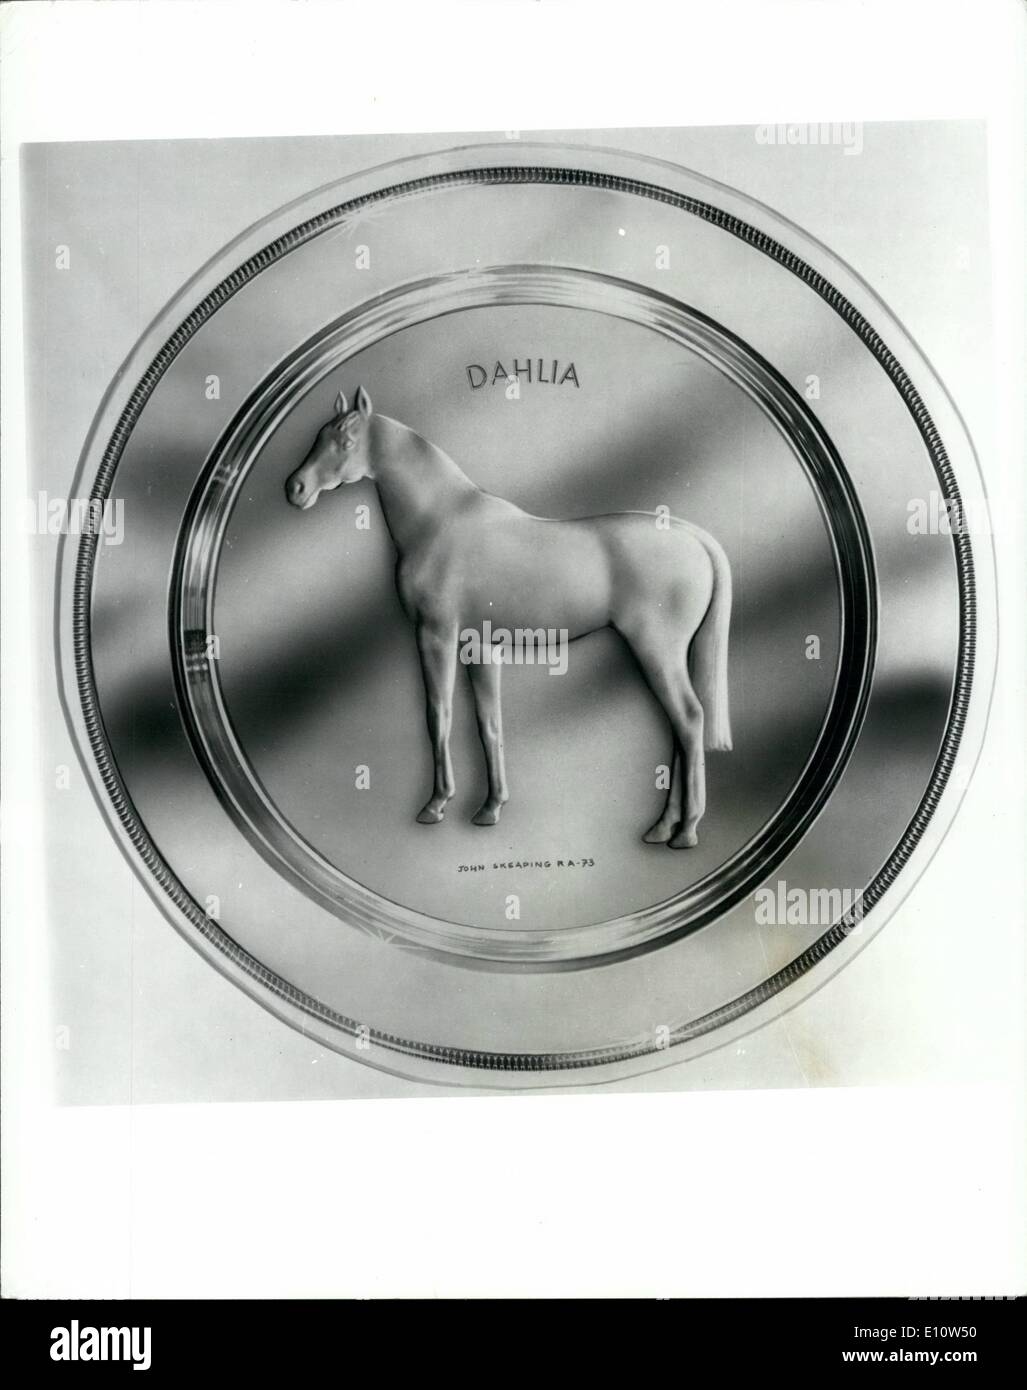 Apr. 04, 1974 - Silver-Gilt plate of filly Dahlia to be presented to its owner : After the second reace at Ascot tomorrow Mr. Nelson Bunker hunt, who was flown from taxes, will receive a silver-gilt plate showing his filly Dahlia, champion racehorse of 1973. The plate, part of a limited has been designed by John Skeaping R.a.Dahlia is shown in has relief. The presentation Will be made in the unsaddlir enclosure by Mr. Jim Joel, the well known racehorse owner - Stock Image